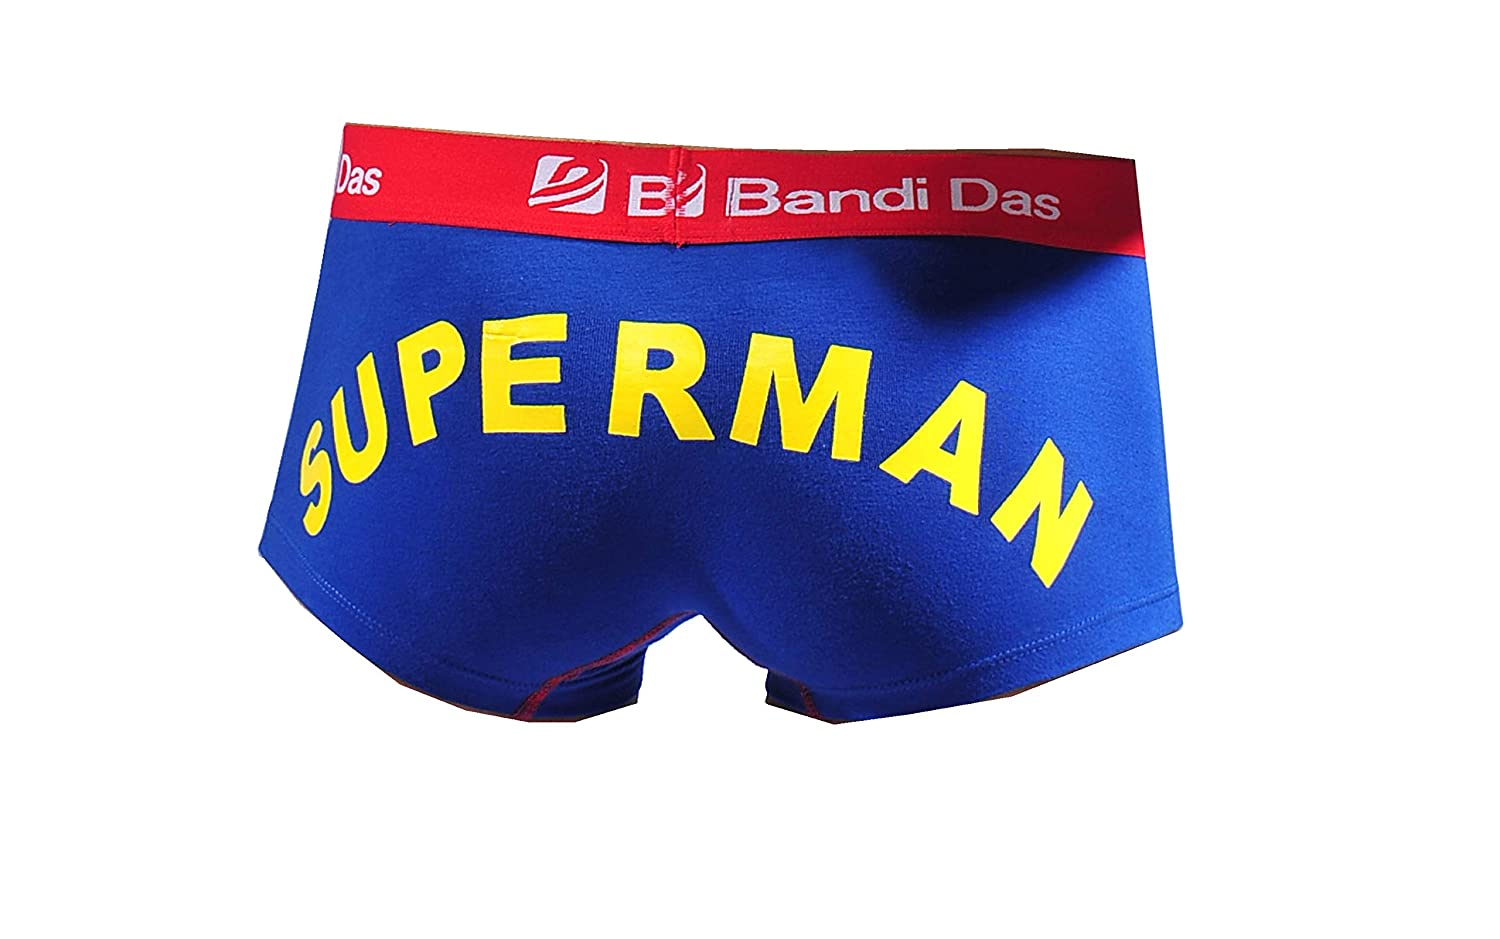 Colorfulworldstore 2 Packs Lycra Cotton Mens Briefs Boxer Underwear with Superman Pattern Printing